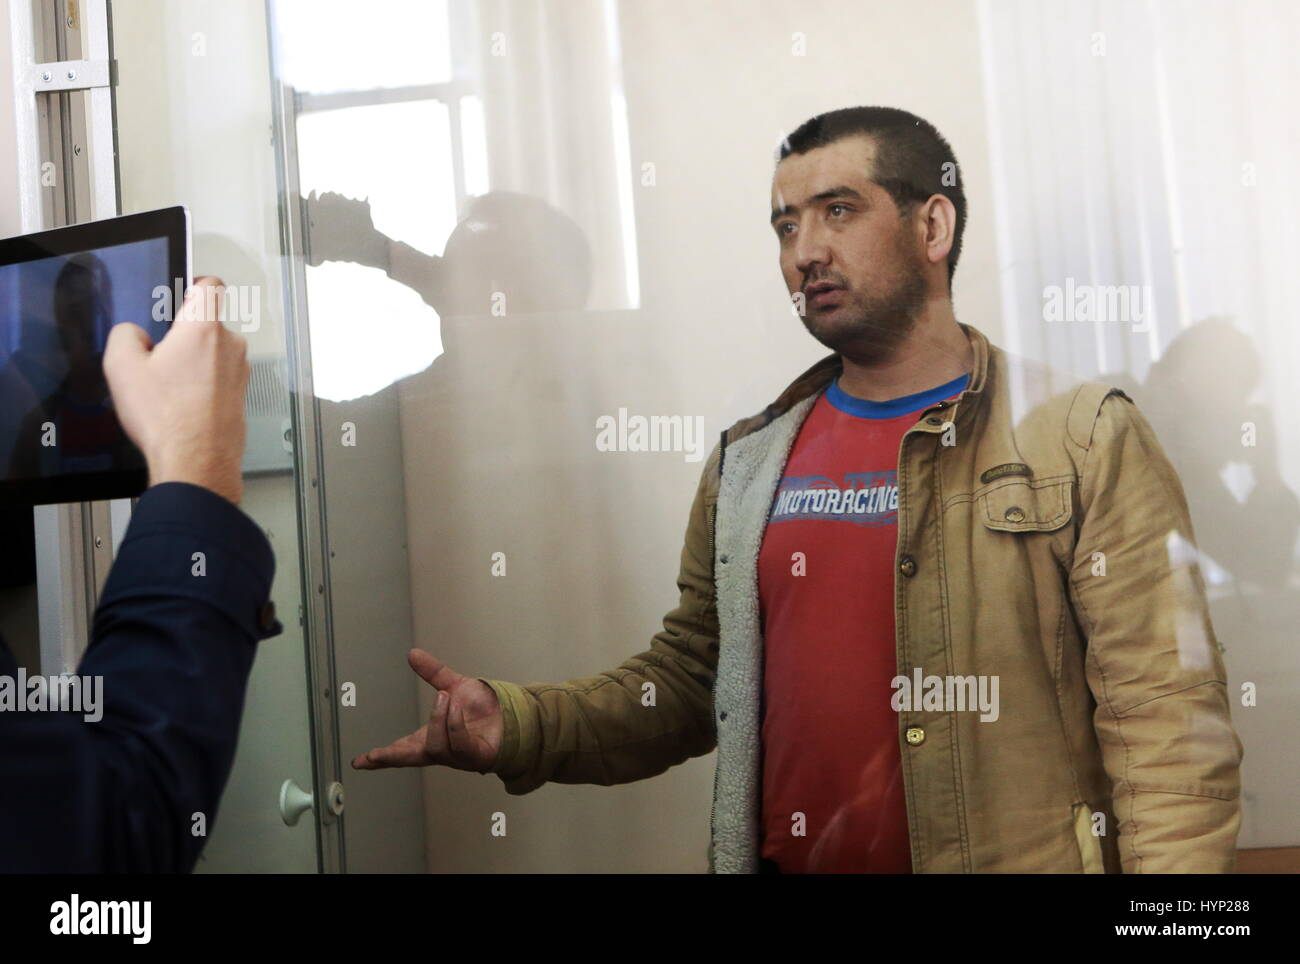 St Petersburg, Russia. 6th Apr, 2017. Kyrgyz-born Atabek Rustamov detained on suspicion in recruiting for the Islamic - Stock Image